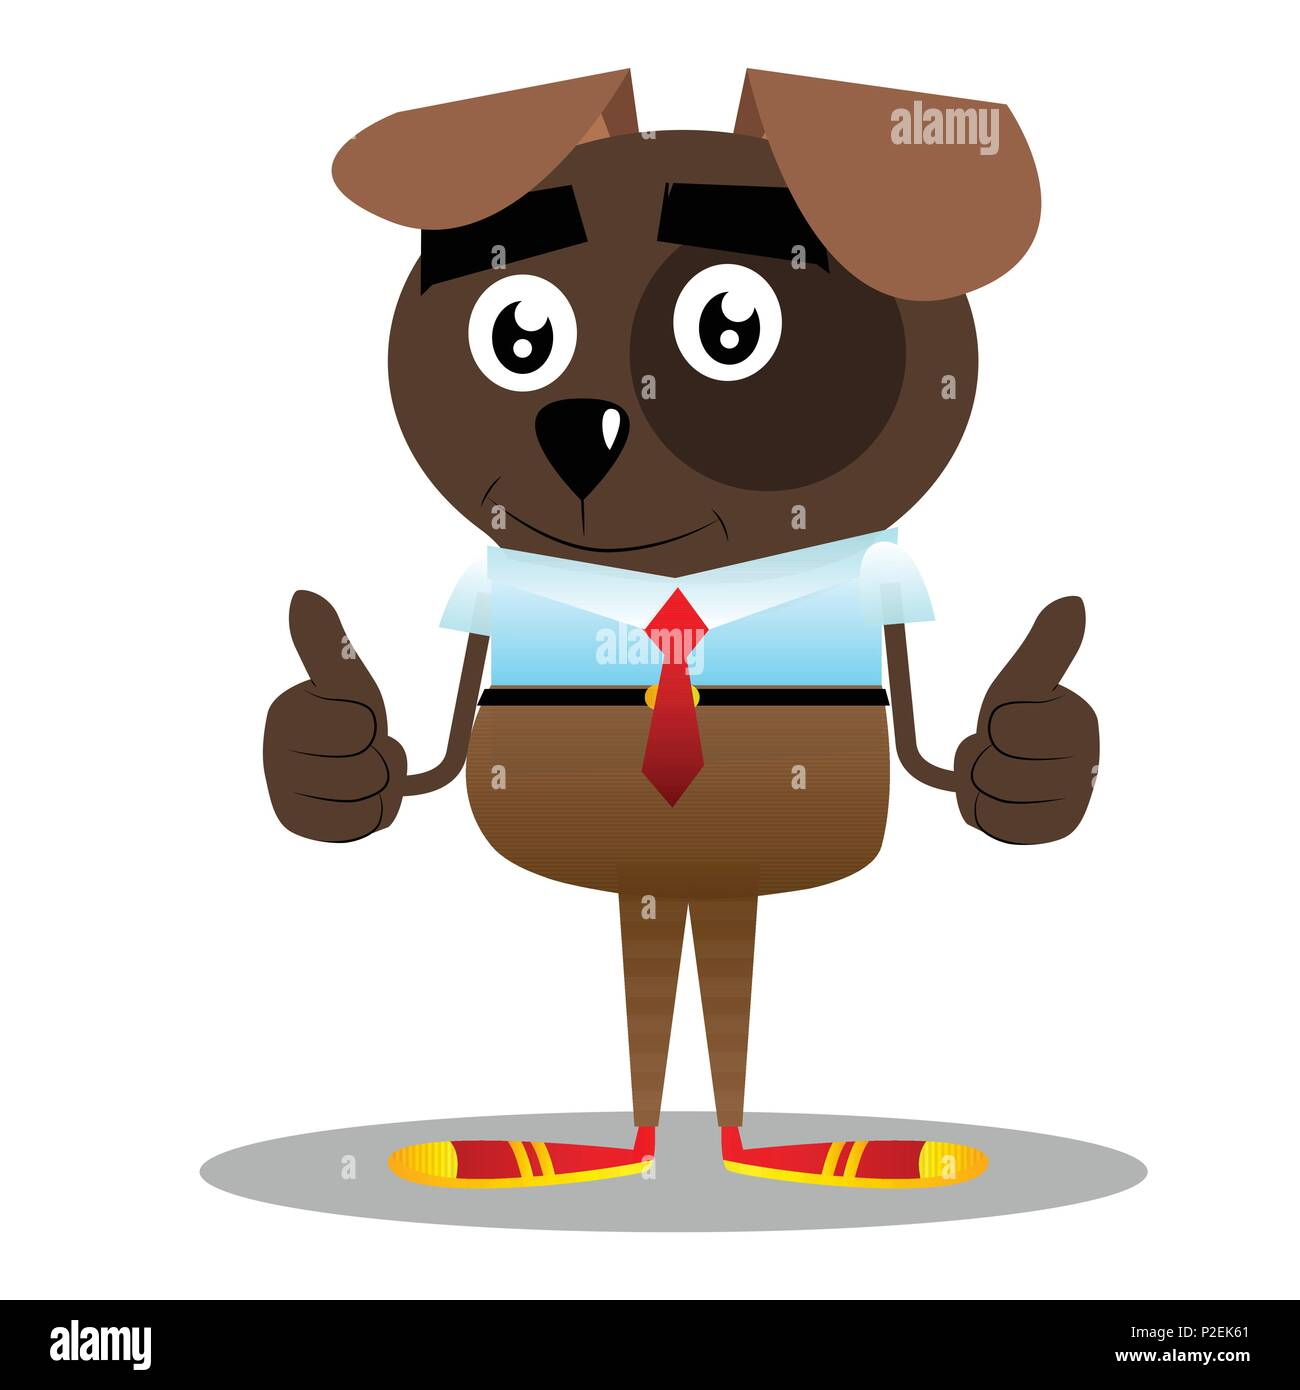 Cartoon illustrated business dog making thumbs up sign with two hands. - Stock Image